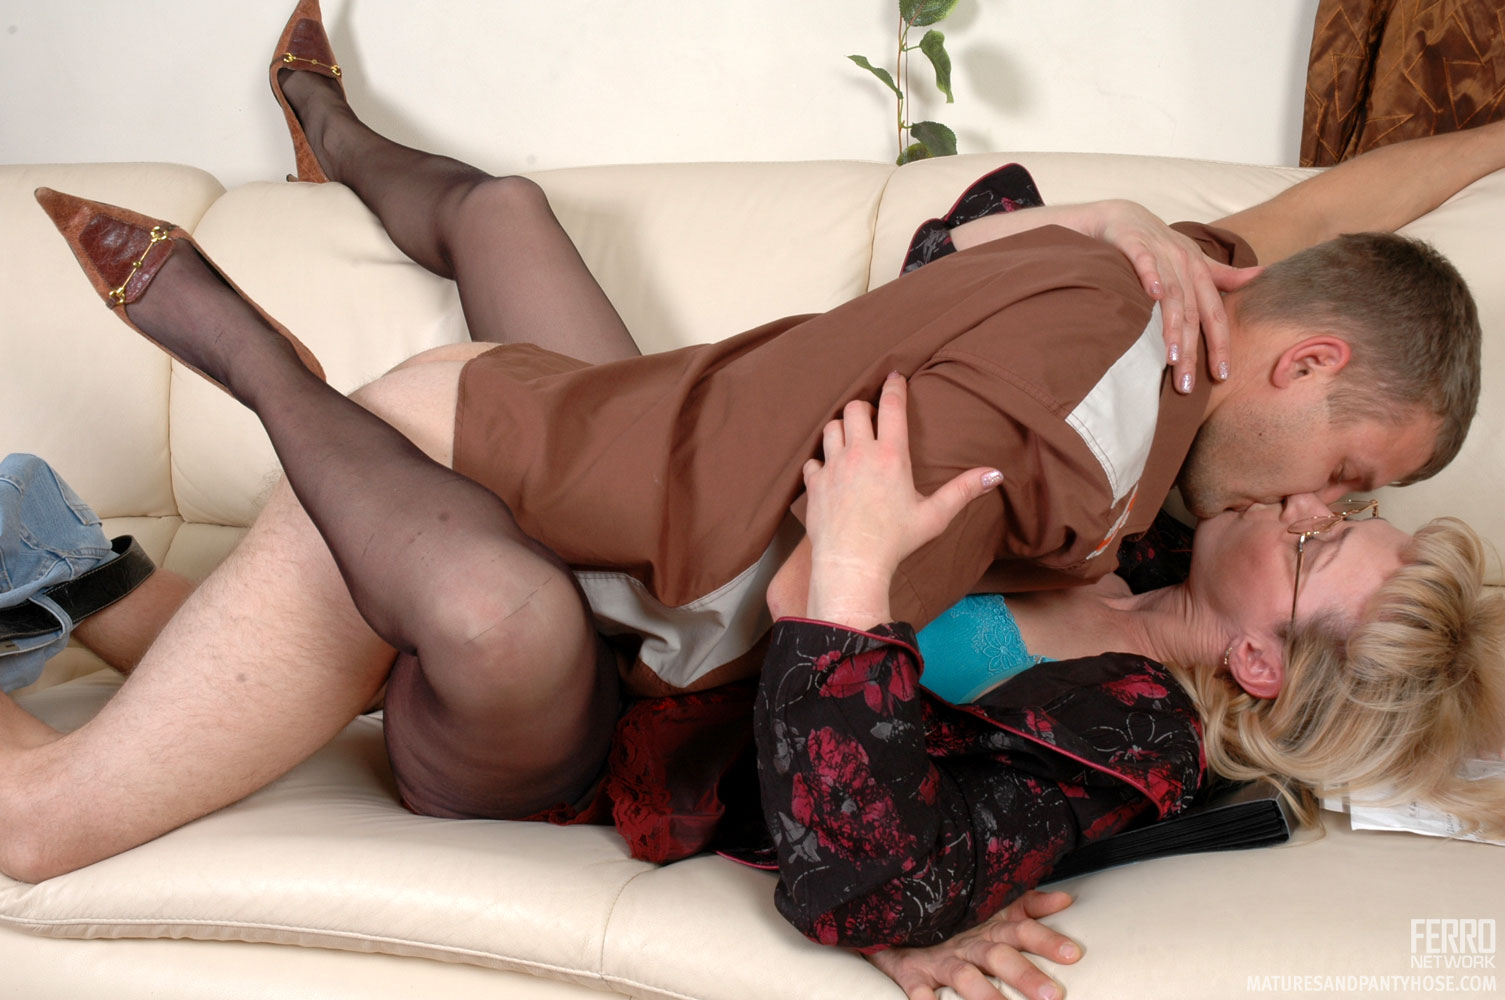 Pantyhose mature riding free video, lesbians undress and hold tits